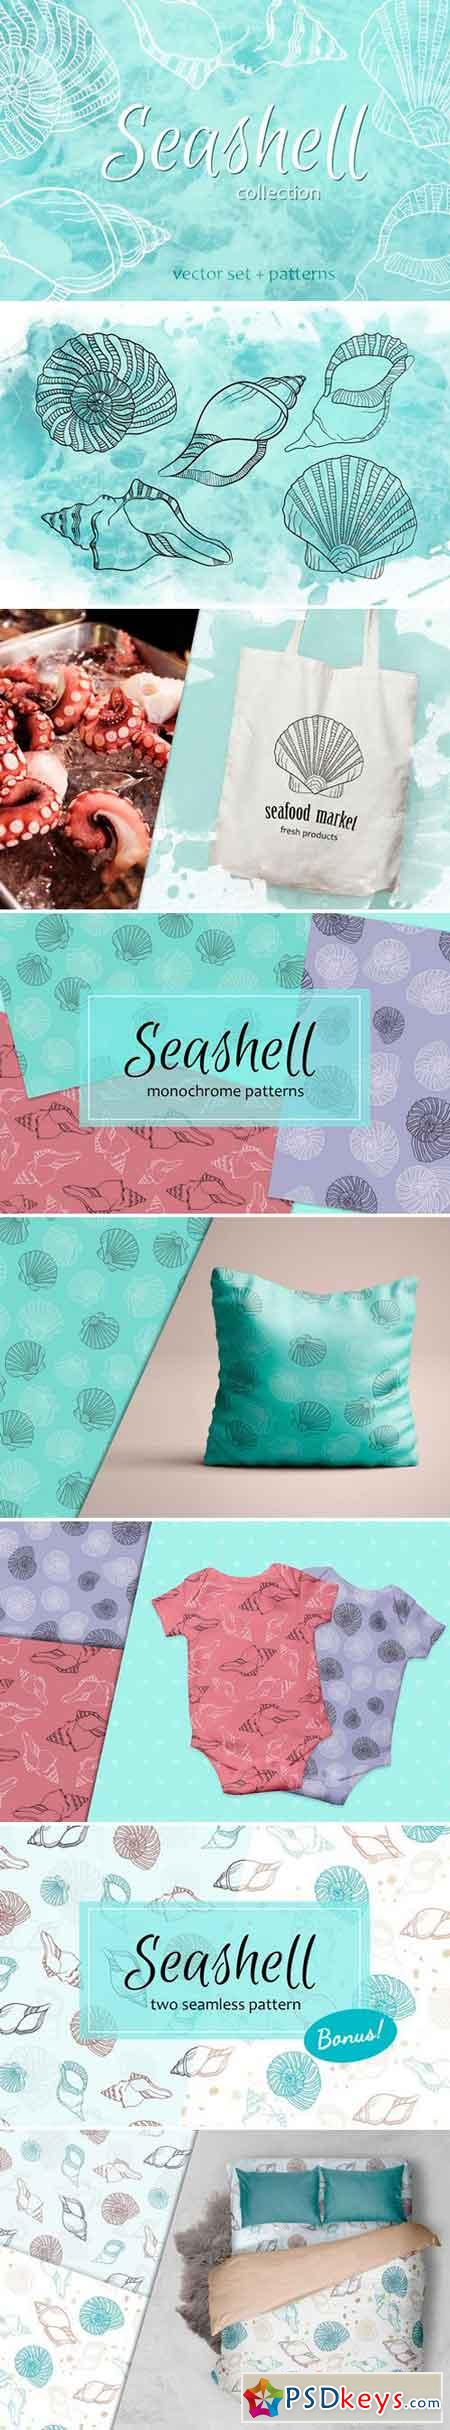 Seashell collection of patterns 2487066